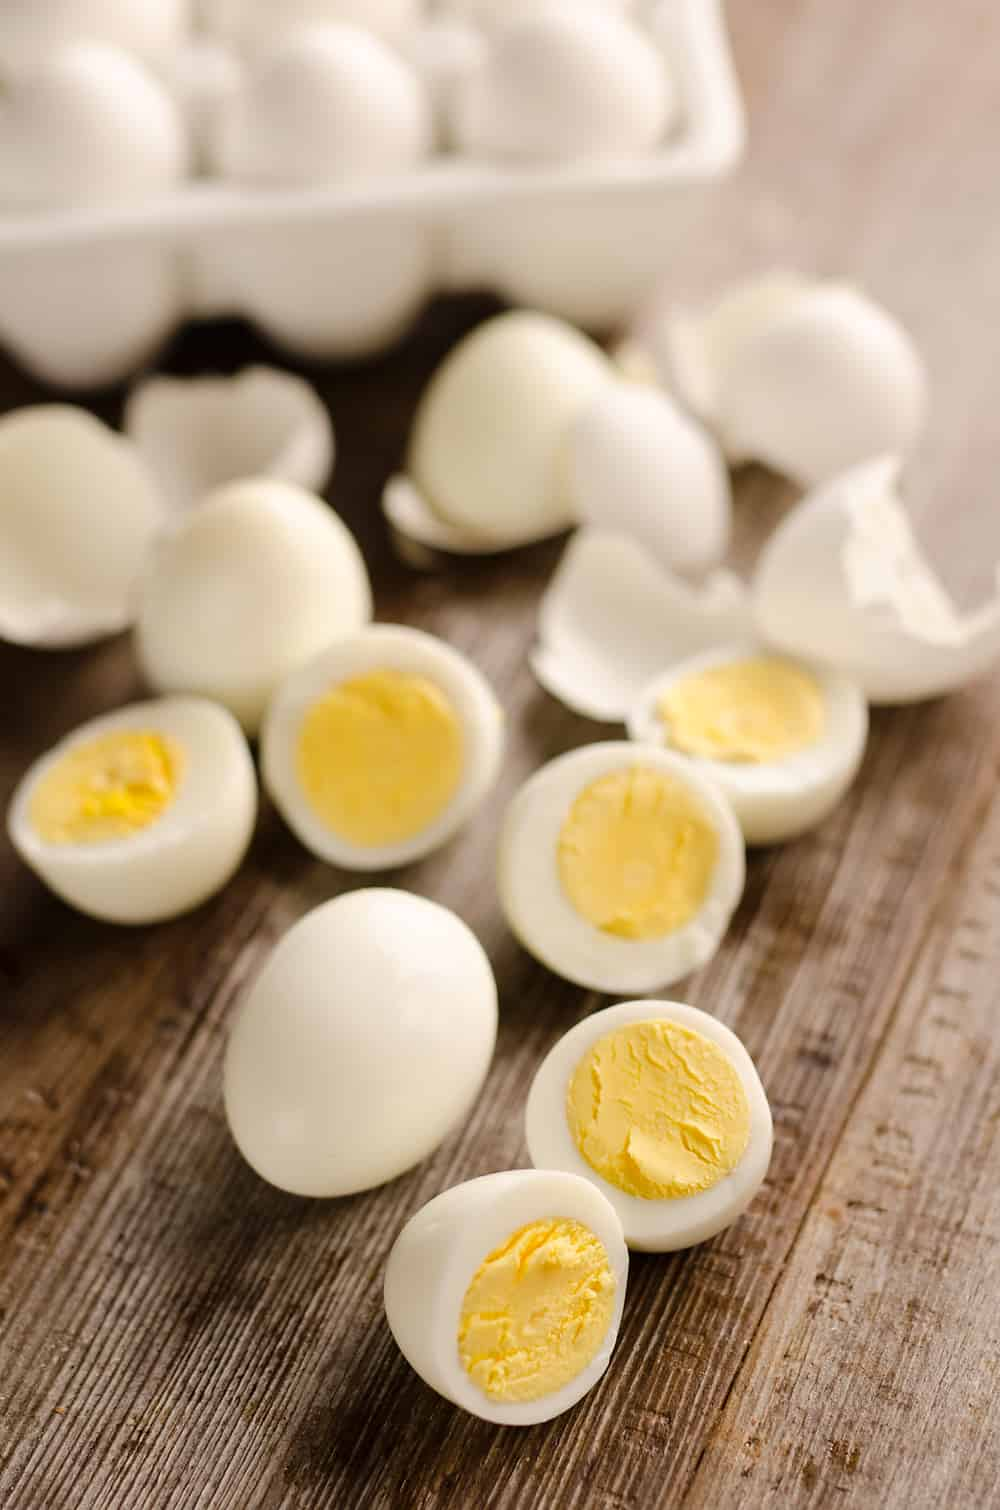 Are you wondering How to Make Perfect Hard Boiled Eggs? If so, an electric pressure cooker, better known as an Instant Pot is the trick you need to try! These easy hard boiled eggs are finished to perfection in less than 15 minutes.